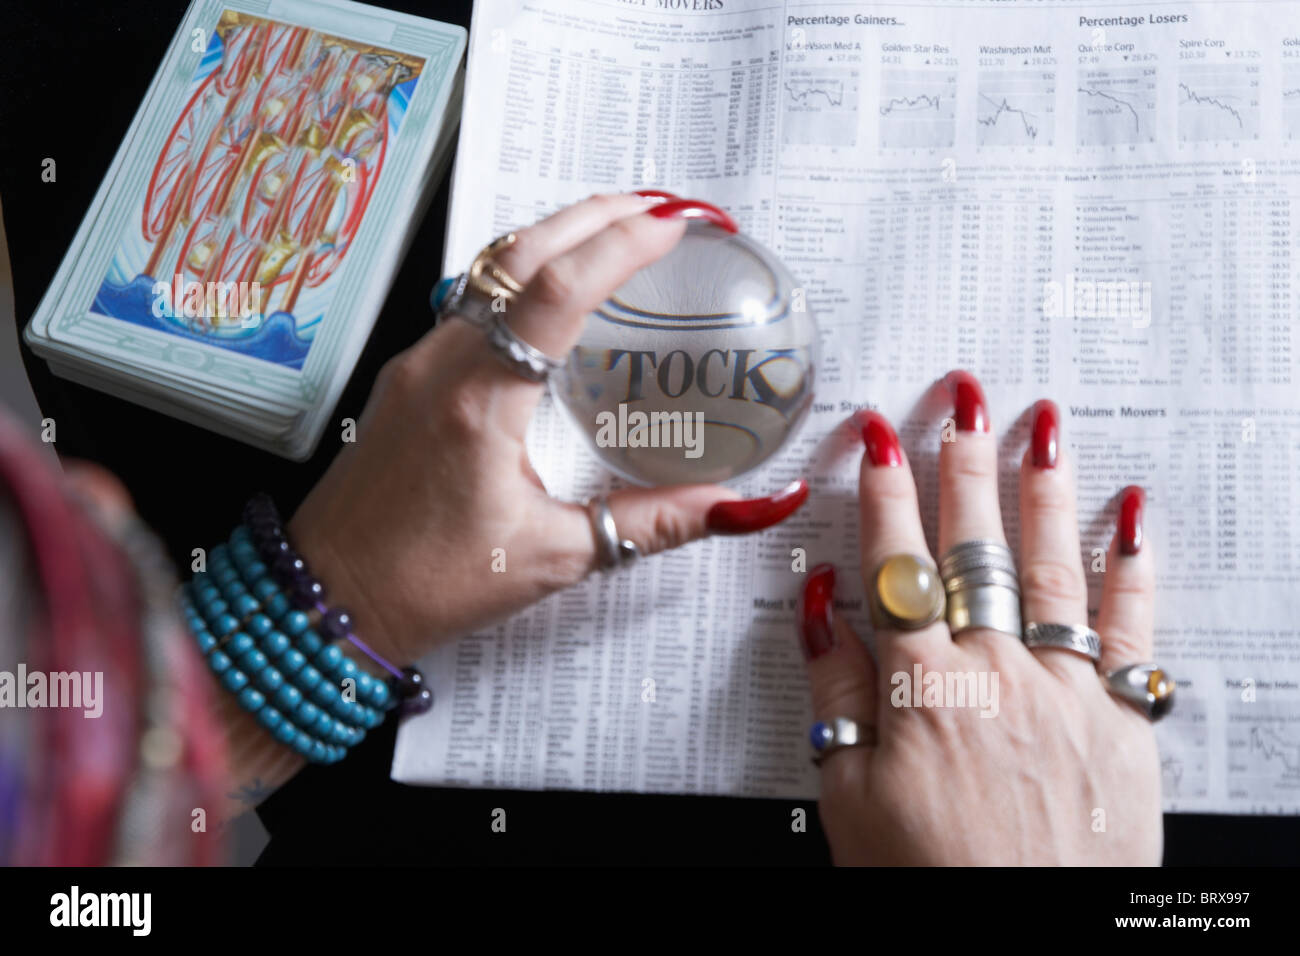 Fortune teller looking at newspaper financial pages through crystal ball, close-up of hands - Stock Image